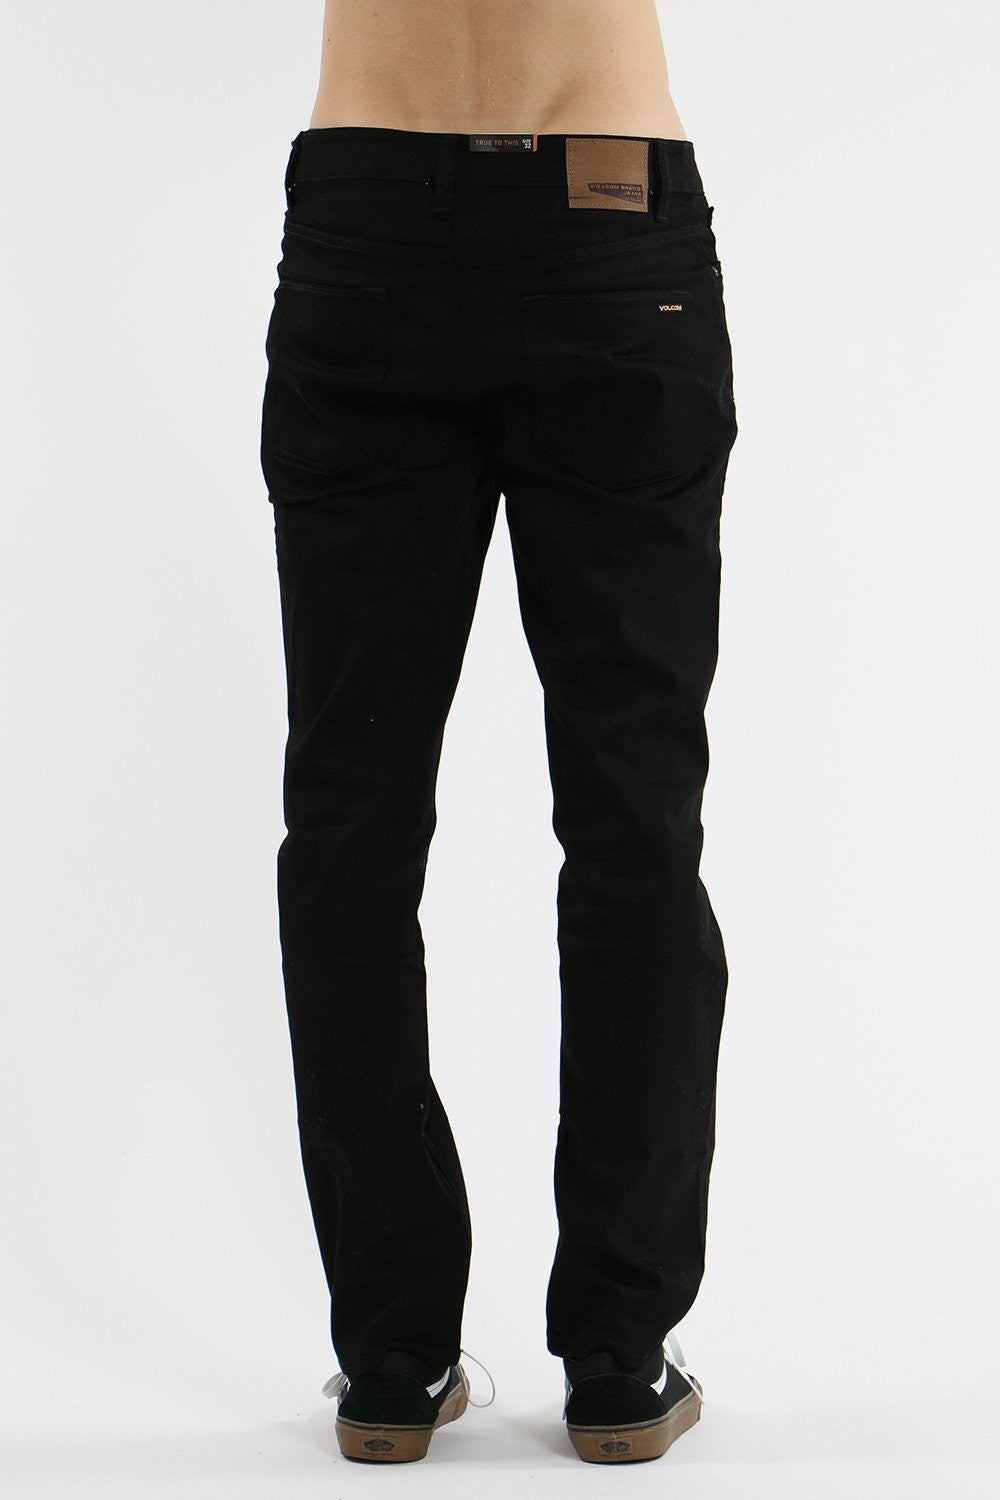 Solver Denim Jean Black